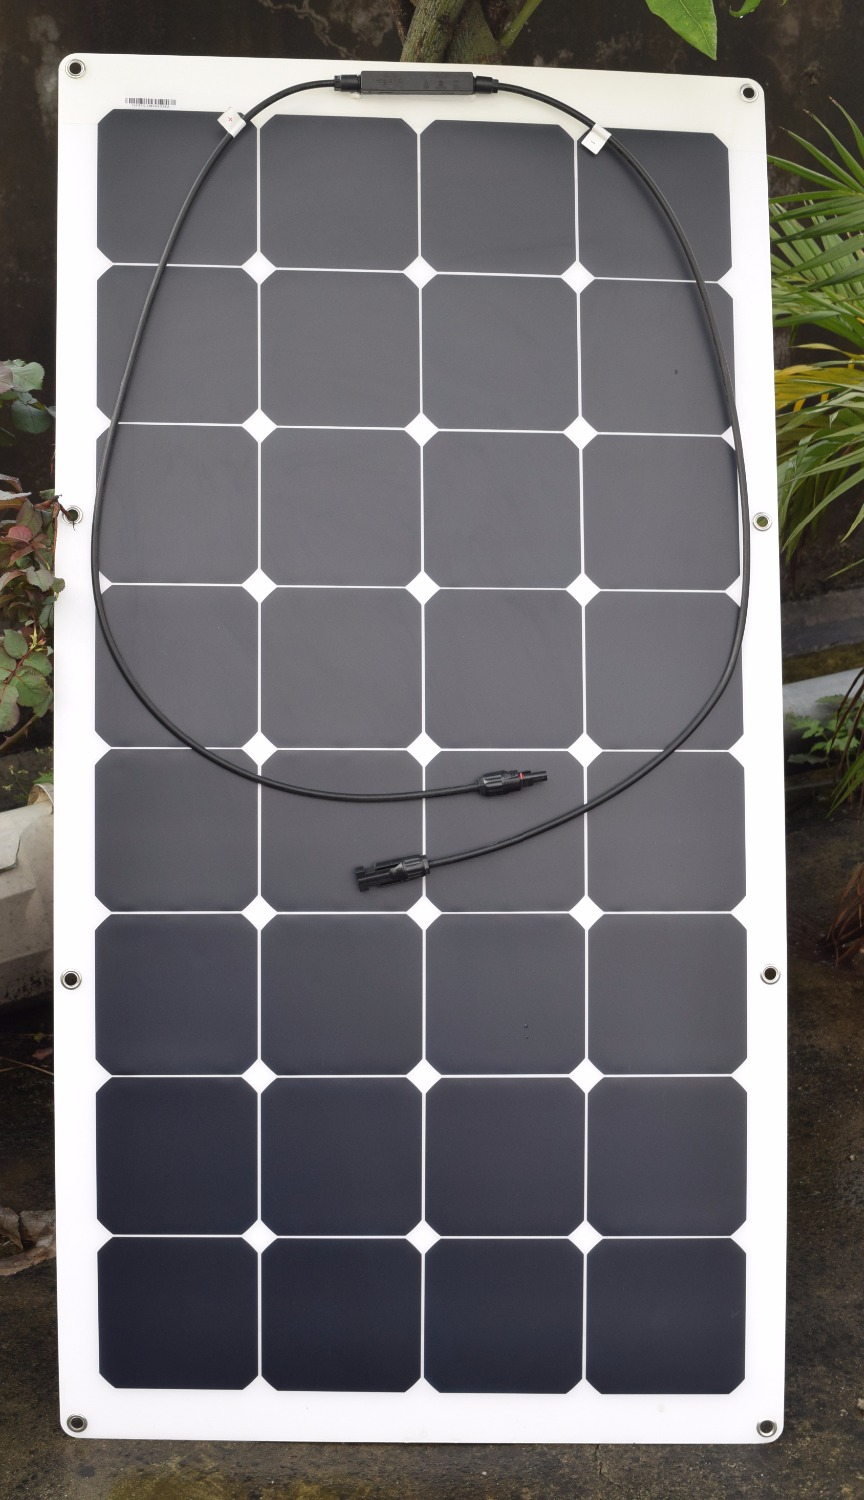 Solarparts 1x100w Frosted Surface flexible solar panel cell module system kits DIY RV/Marine/Boat/Camp Car 12V solar bat charger(China (Mainland))